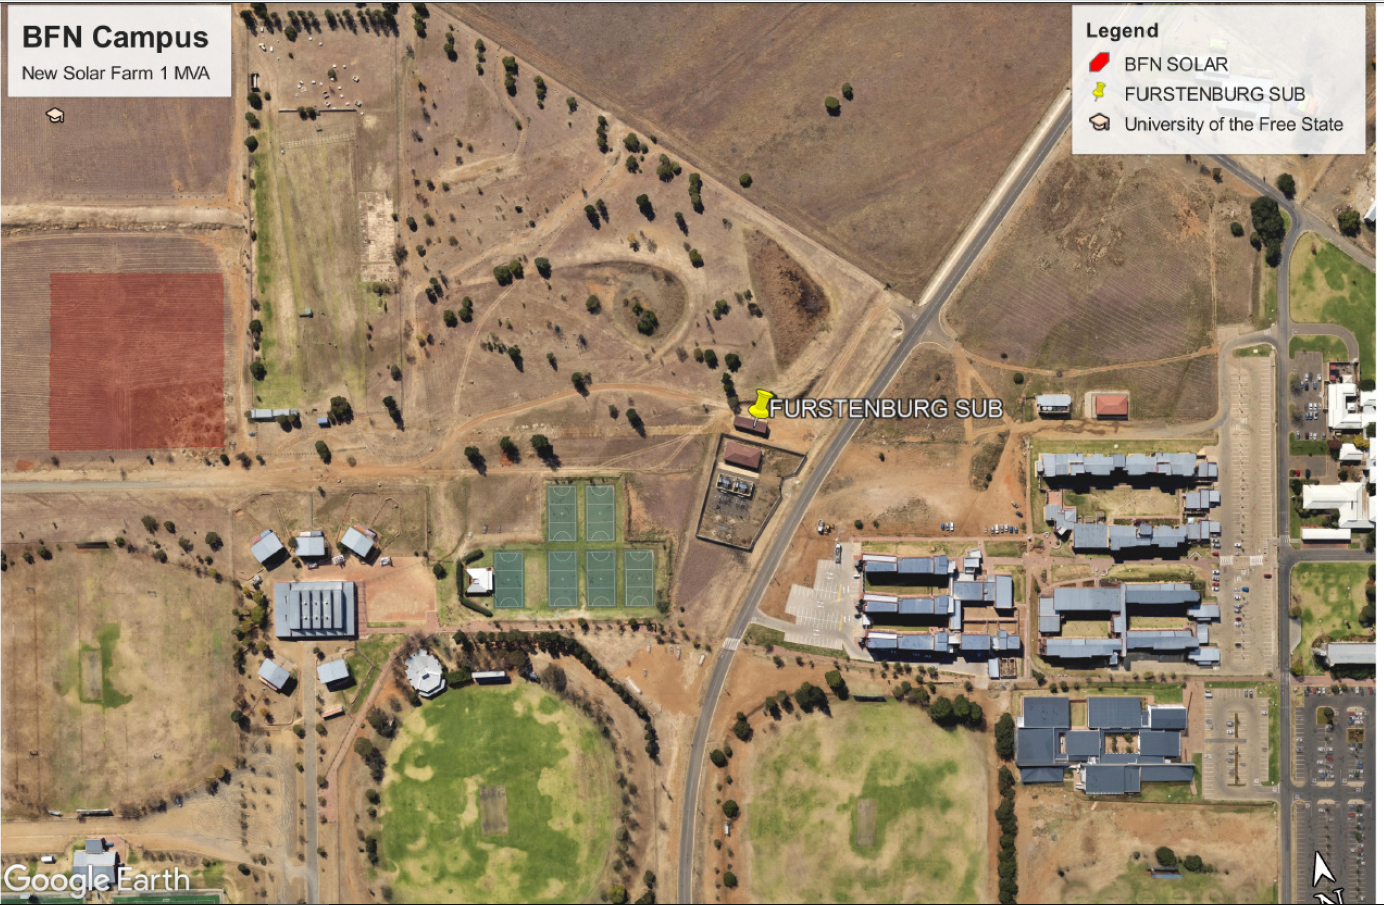 Solar energy is the future: new solar farm propels UFS into the Fourth Industrial Revolution.